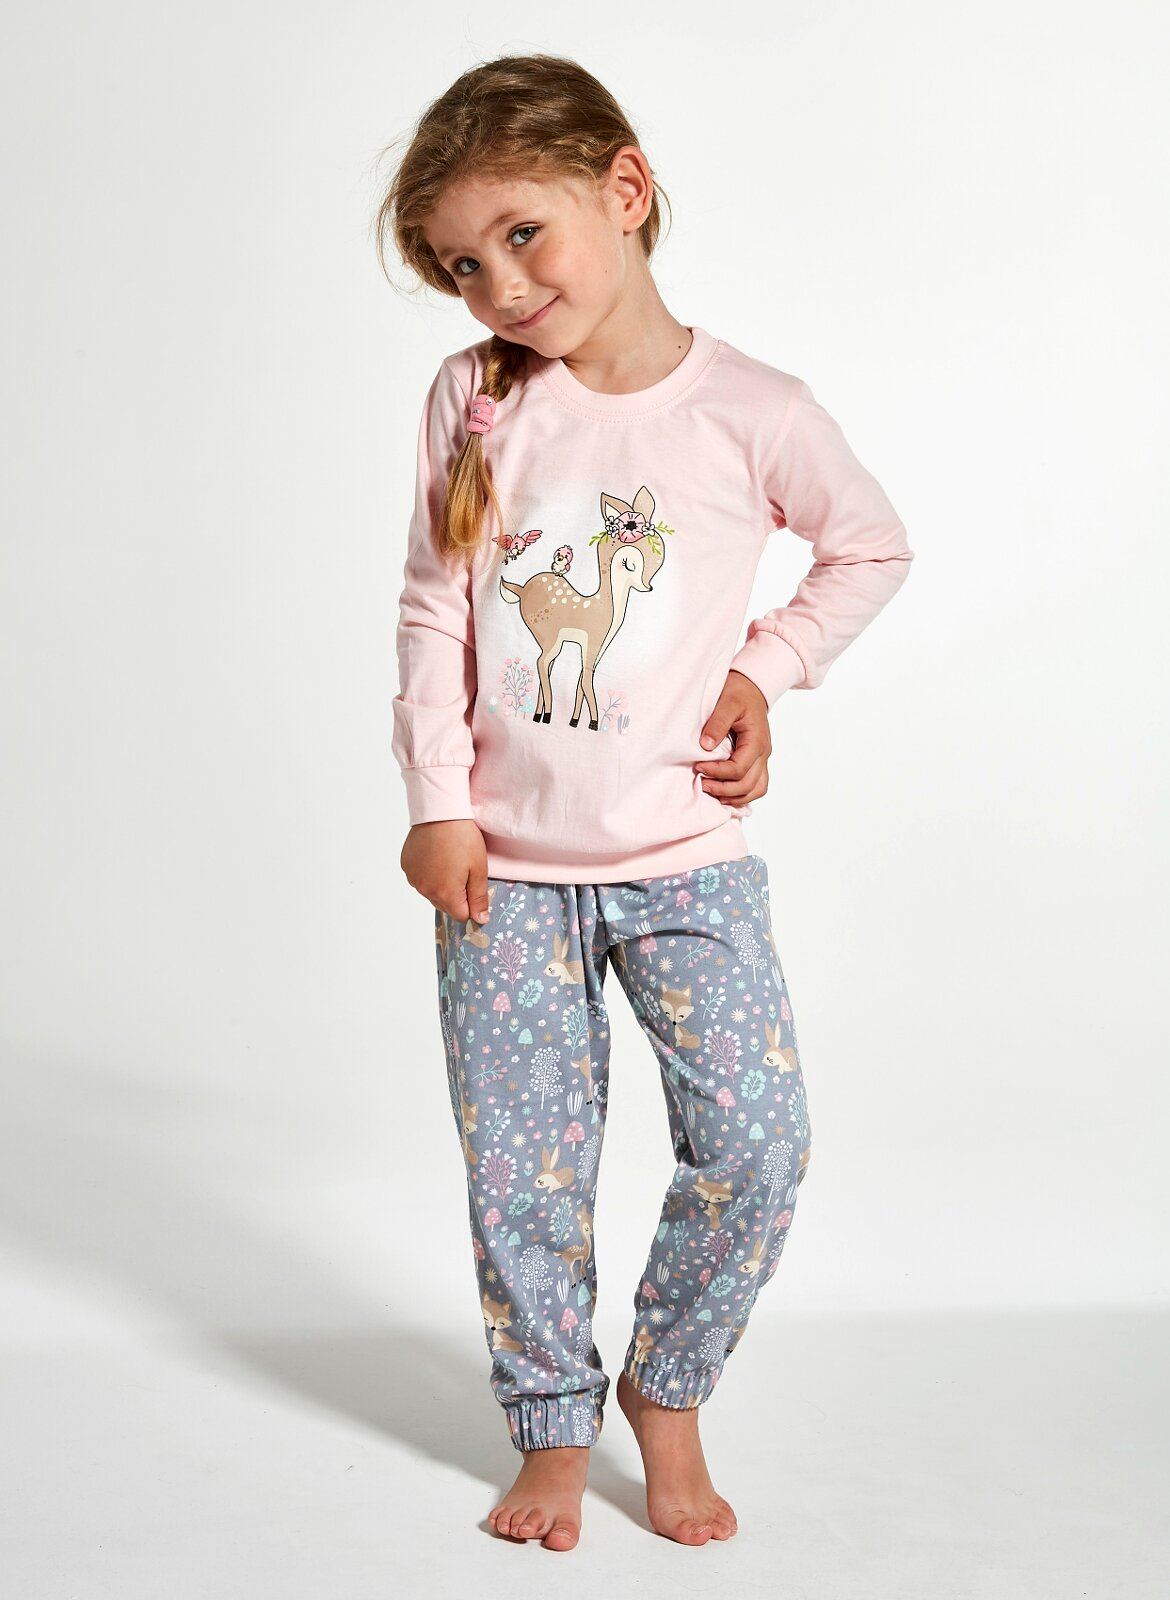 Піжама Cornette Kids Girl 594/122 Roe 86-128, Рожевий, 86-92